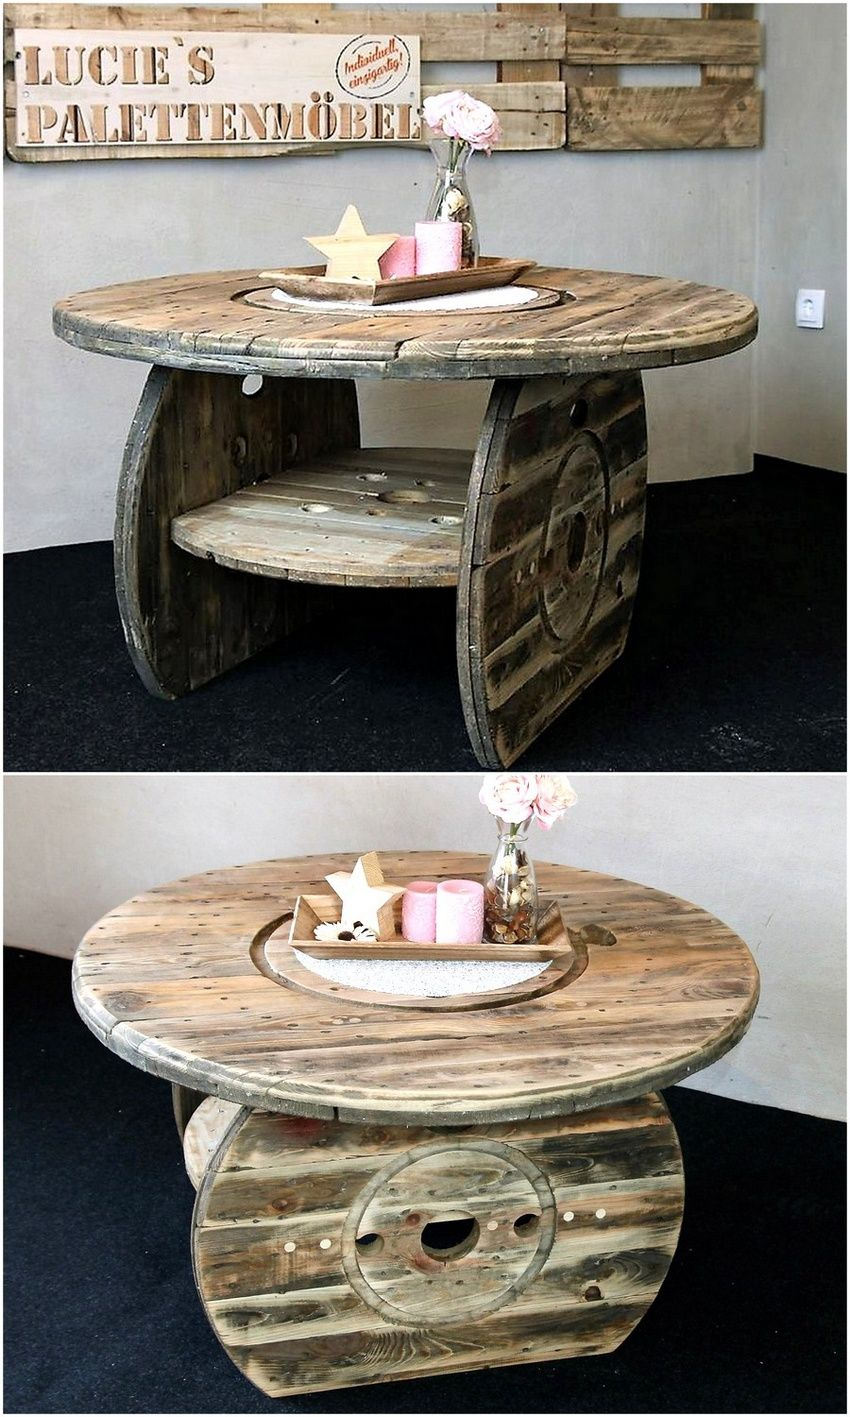 Creative Pallet Recycling Ideas by Lucie's Palettenmöbel #cablespooltables